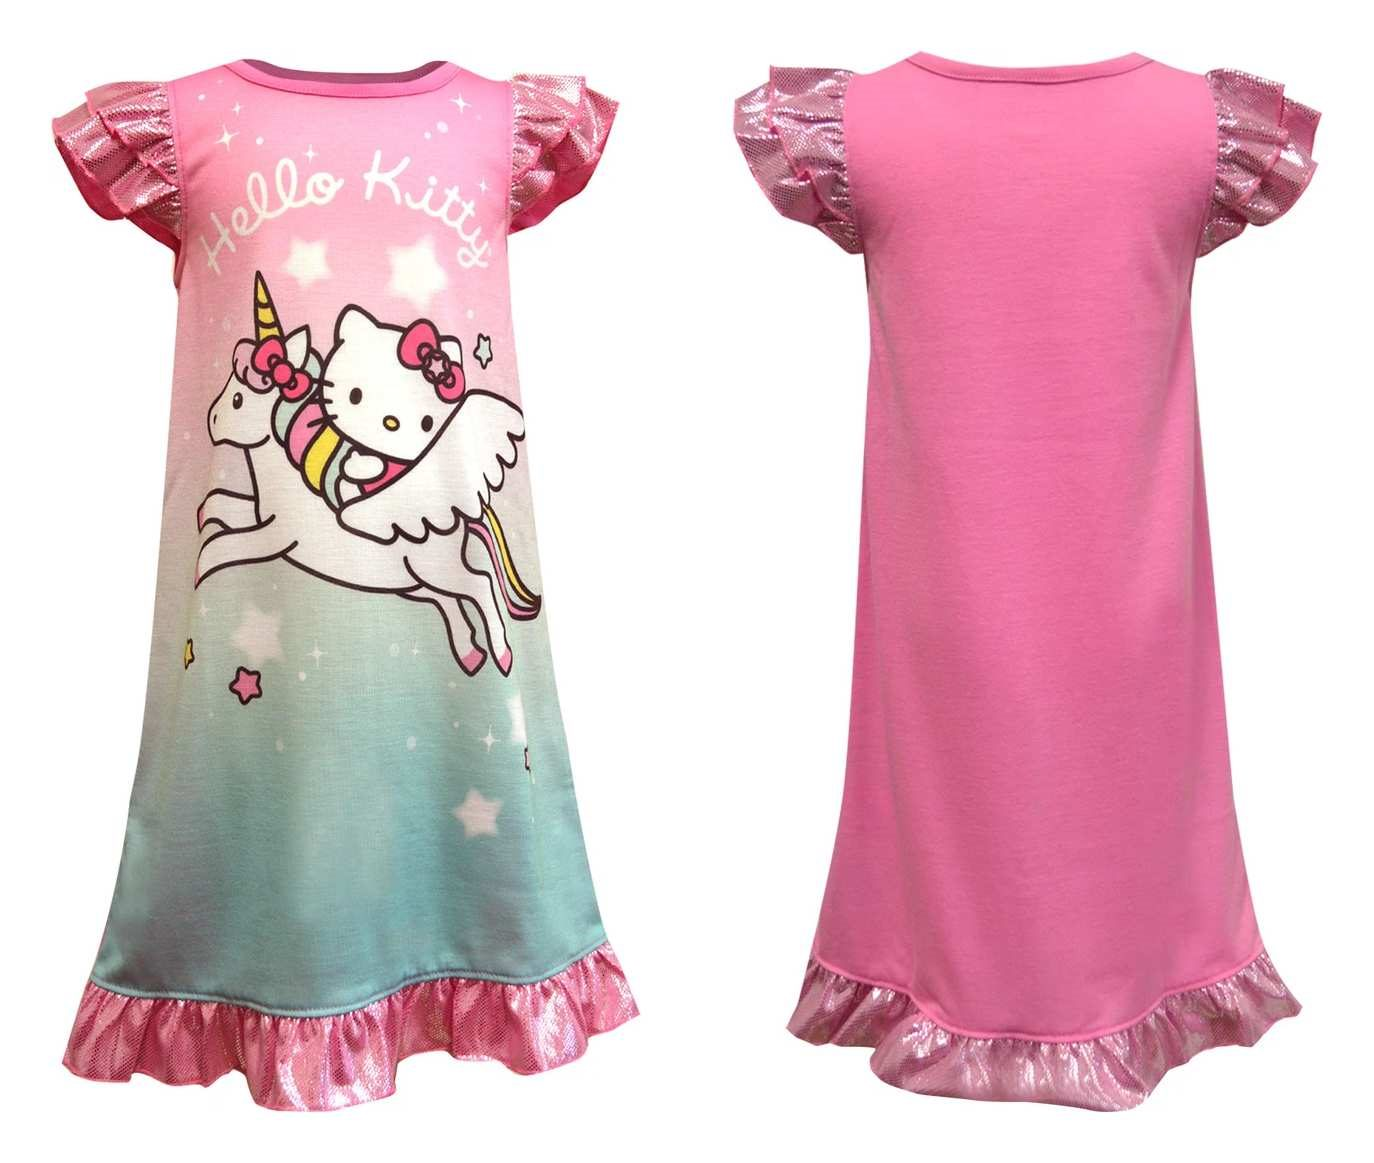 cute nightgowns